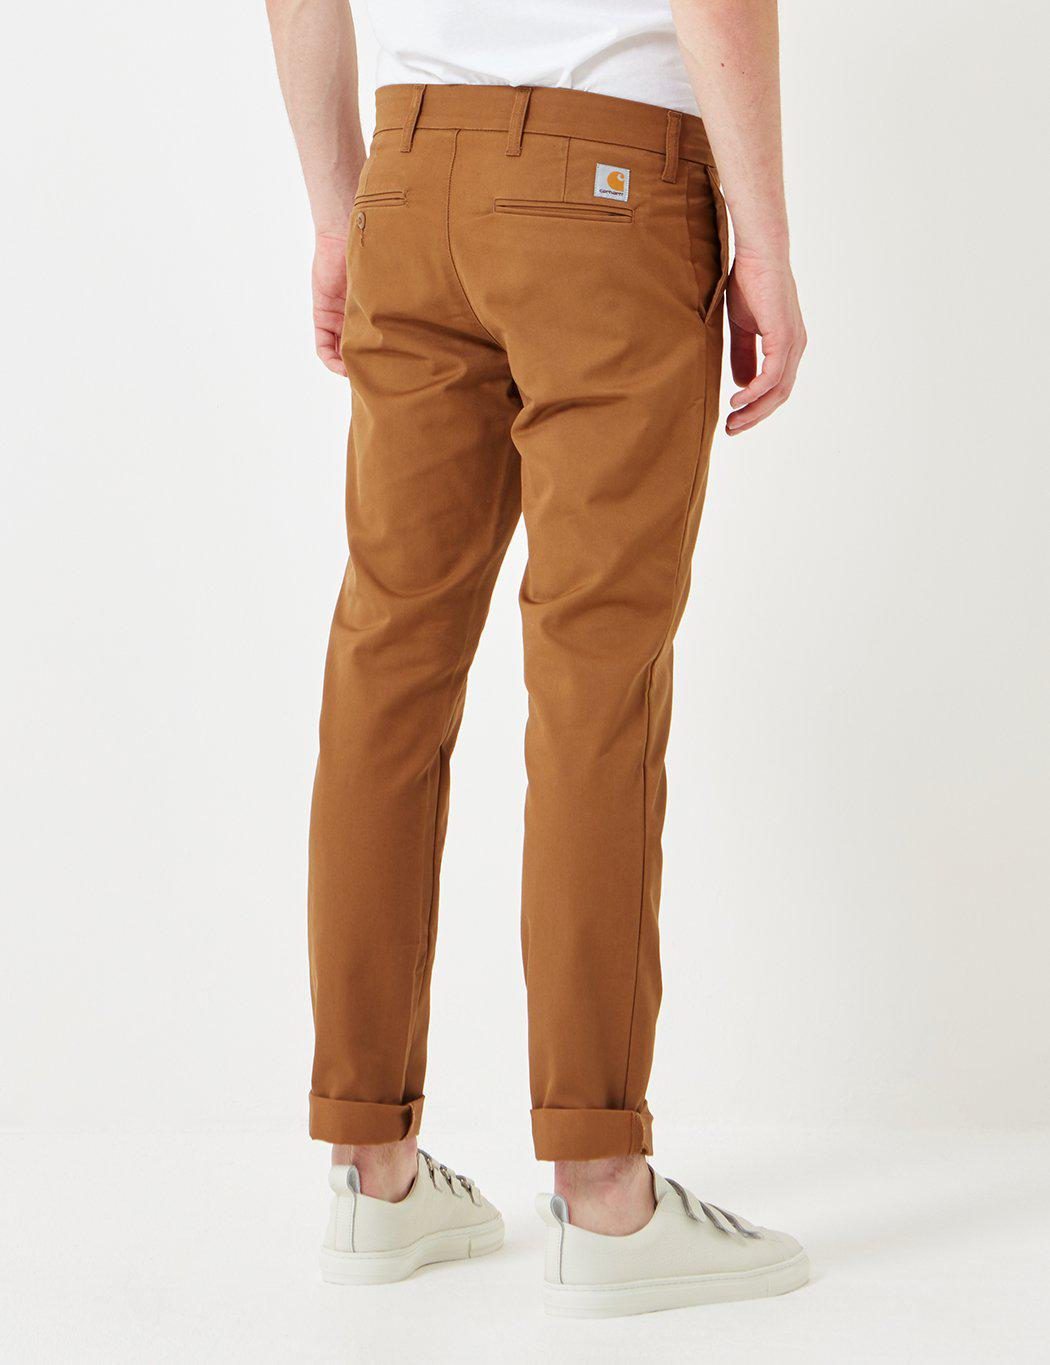 how to wear of brown chinos